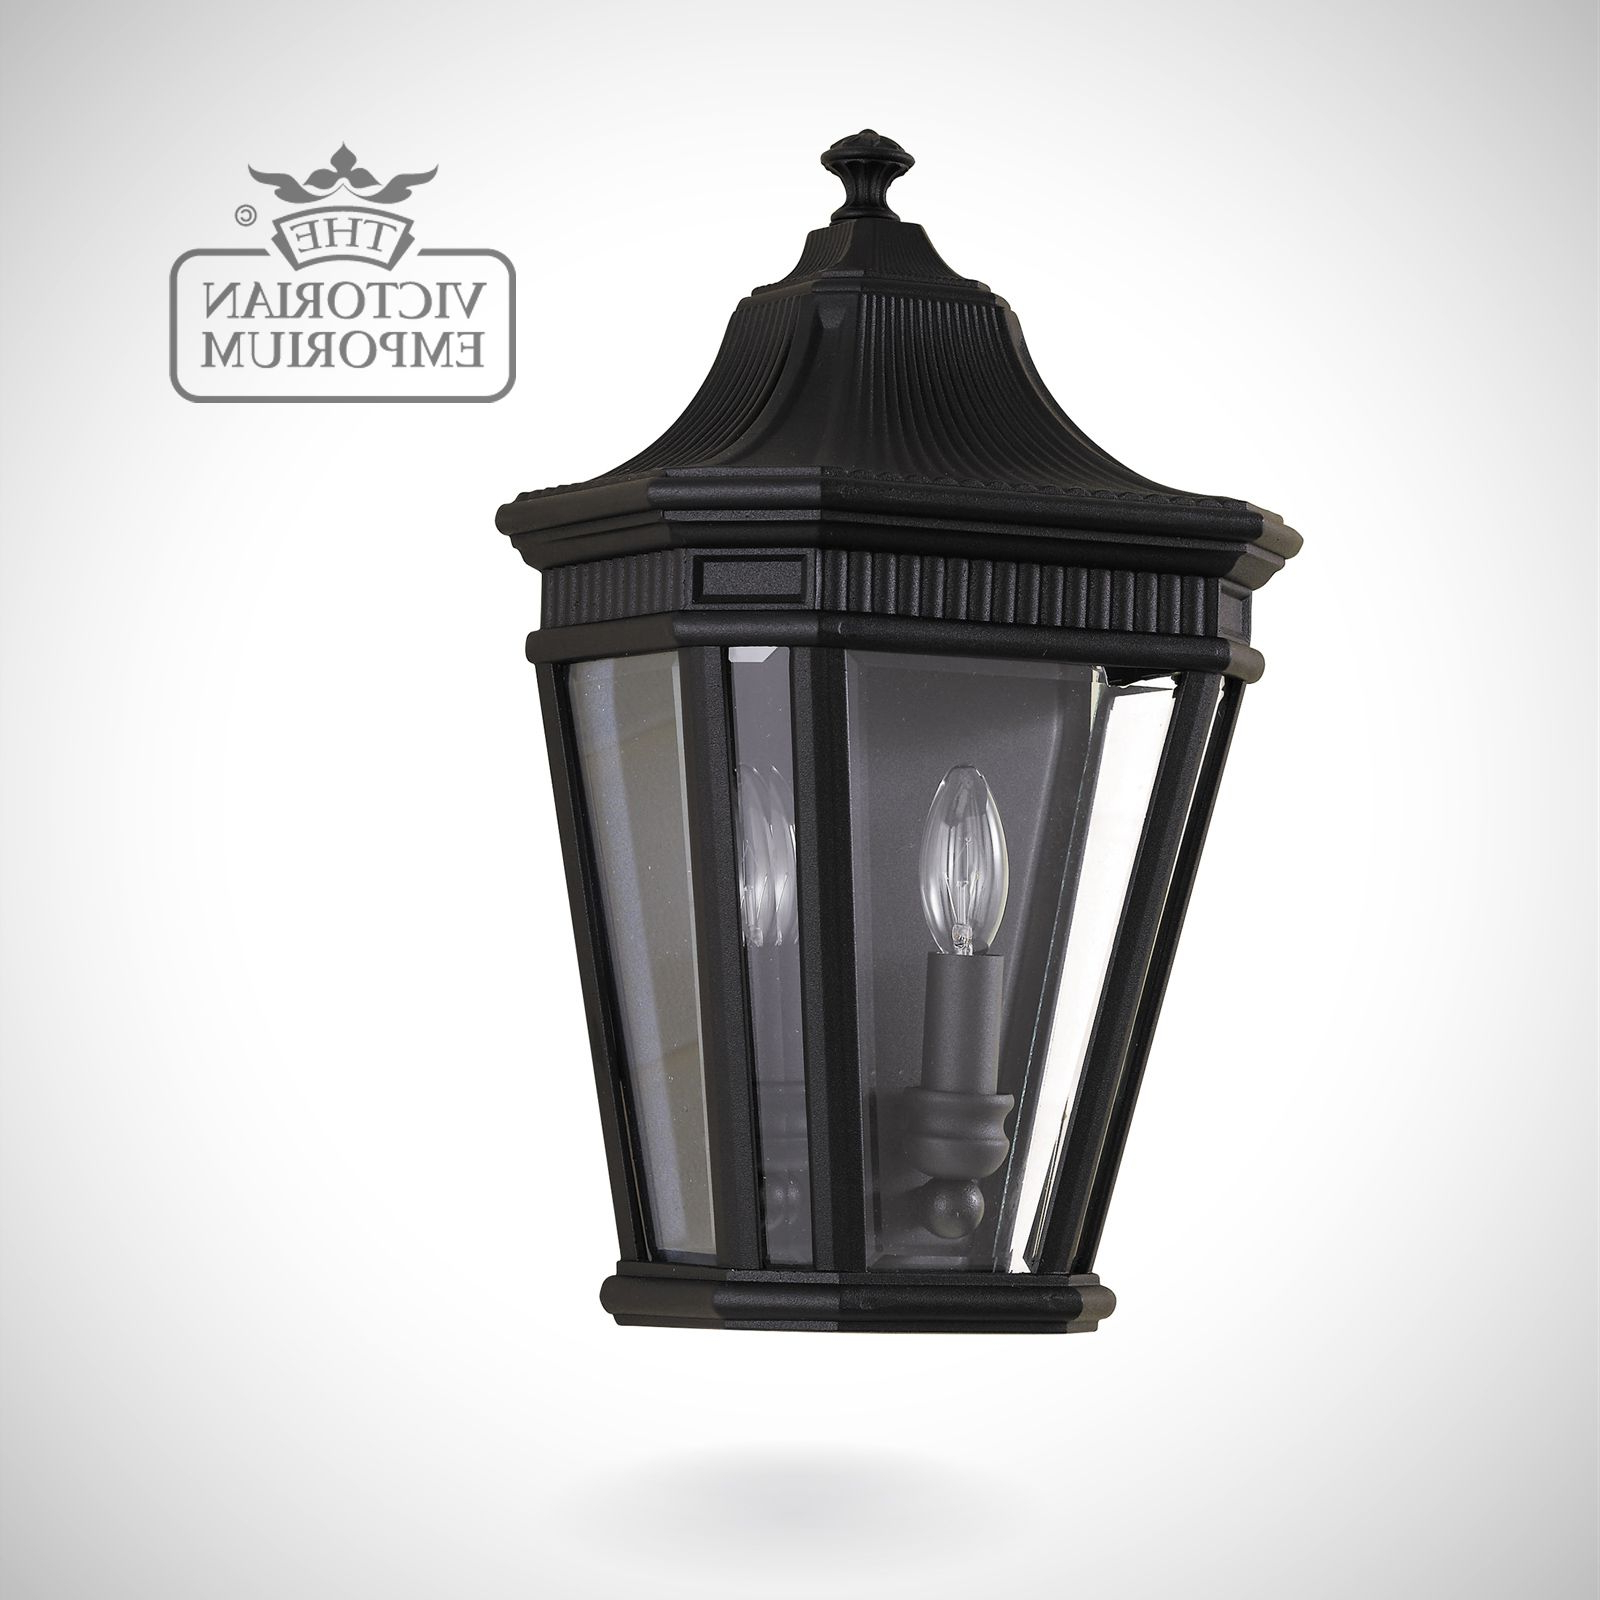 Outdoor Wall Lights (View 17 of 20)